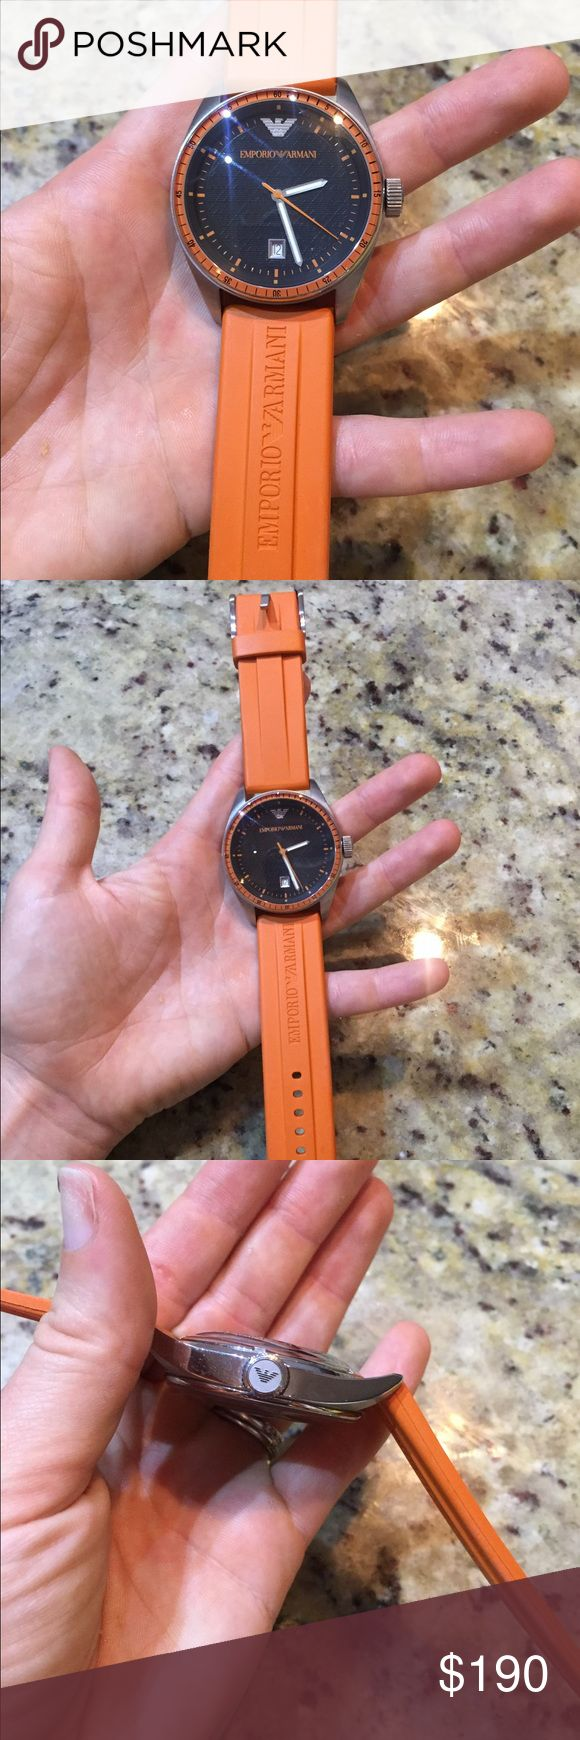 Emporio armani orange watch Emporio armani orange watch. Great condition. Has a small smudge/scratch on top left of watch face thats really not discernible, but wanted to mention it. Any questions please ask. Will take most reasonable offers Emporio Armani Accessories Watches